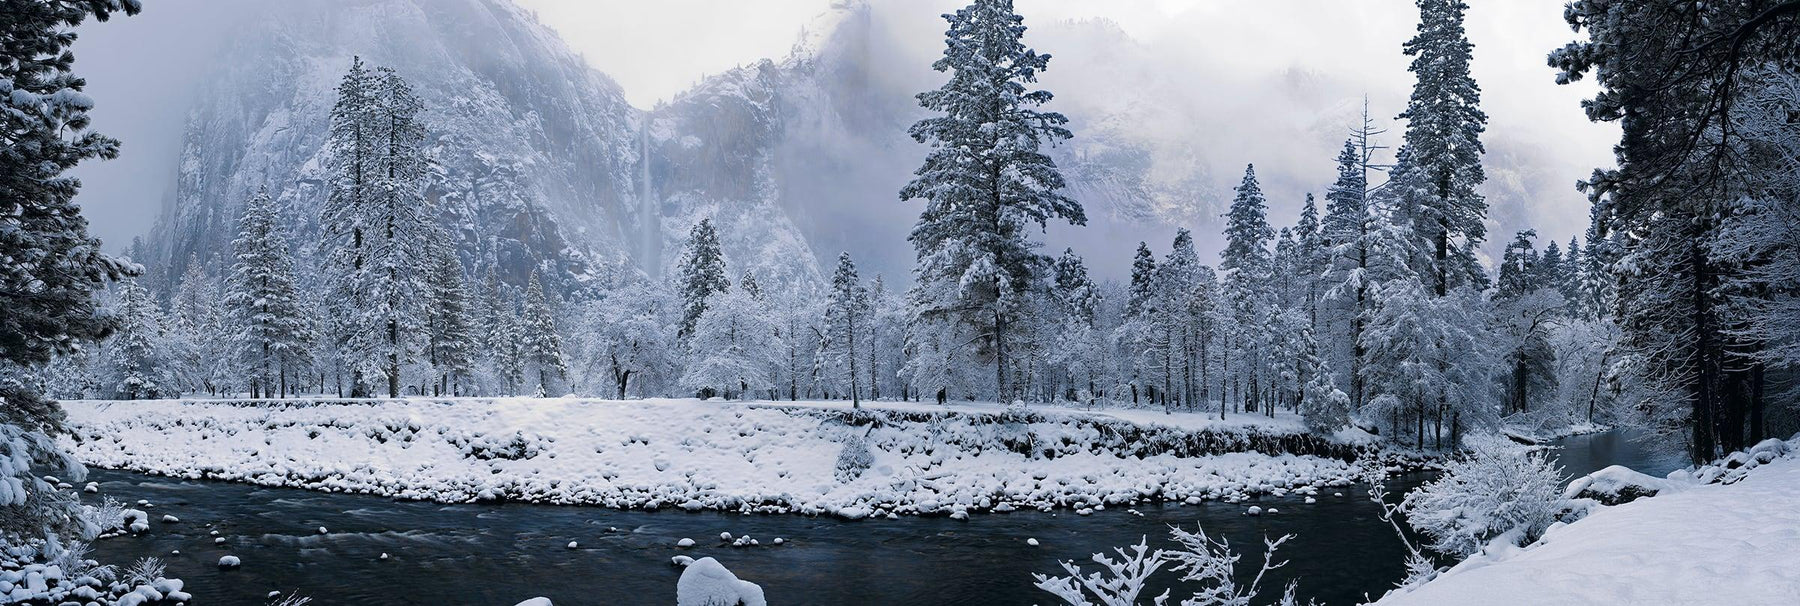 River running through the snow covered forest of Yosemite National Park California with a waterfall in the background